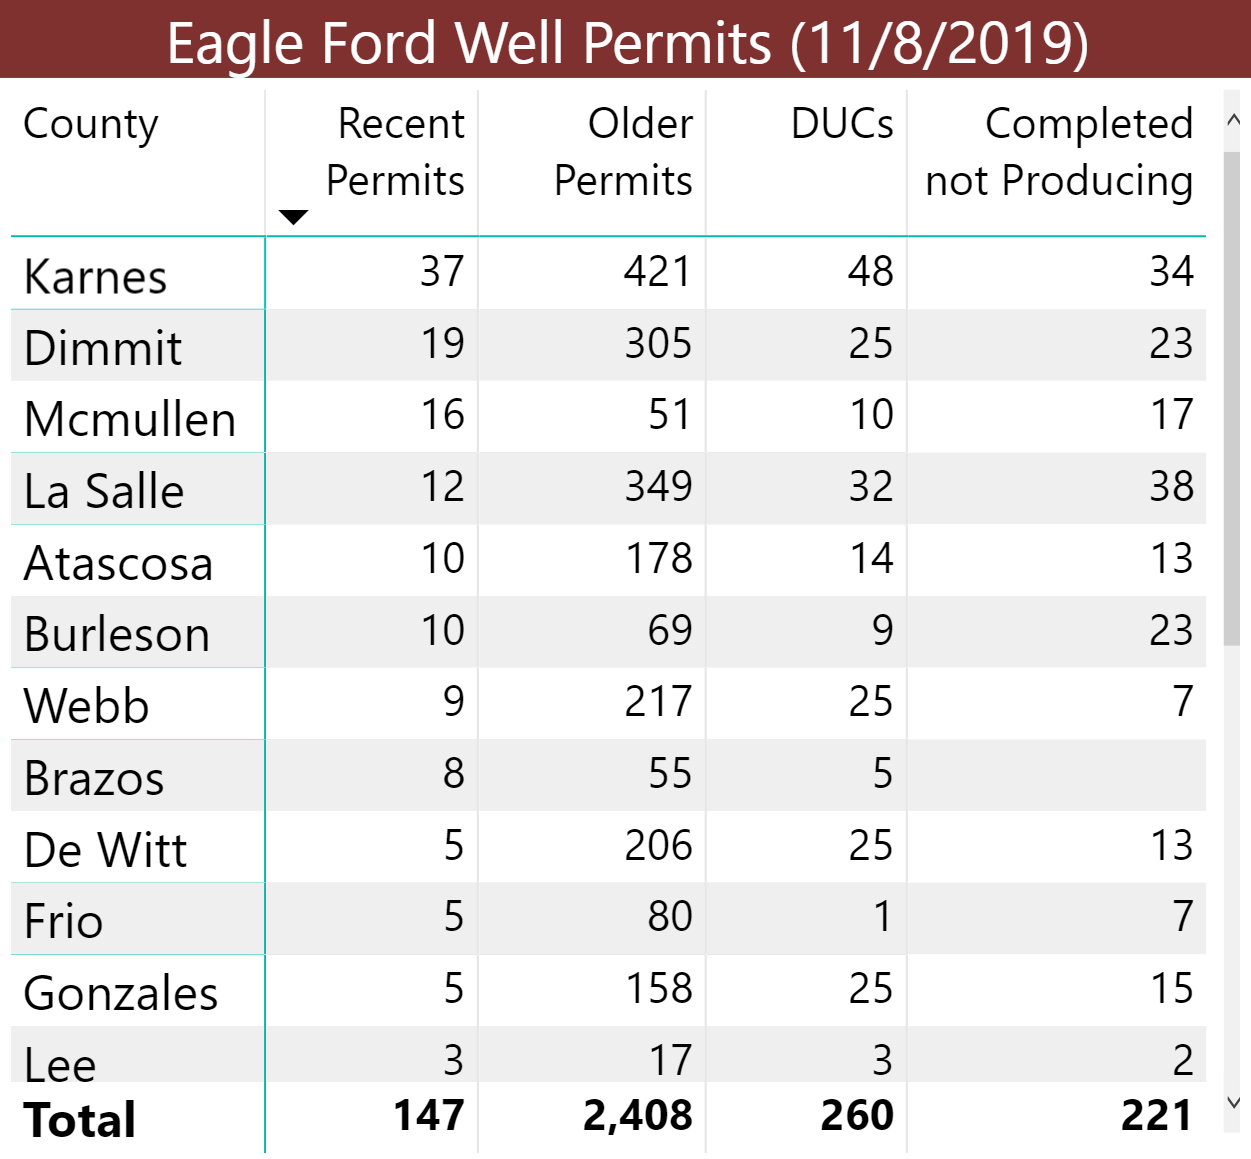 Eagle Ford permits by county